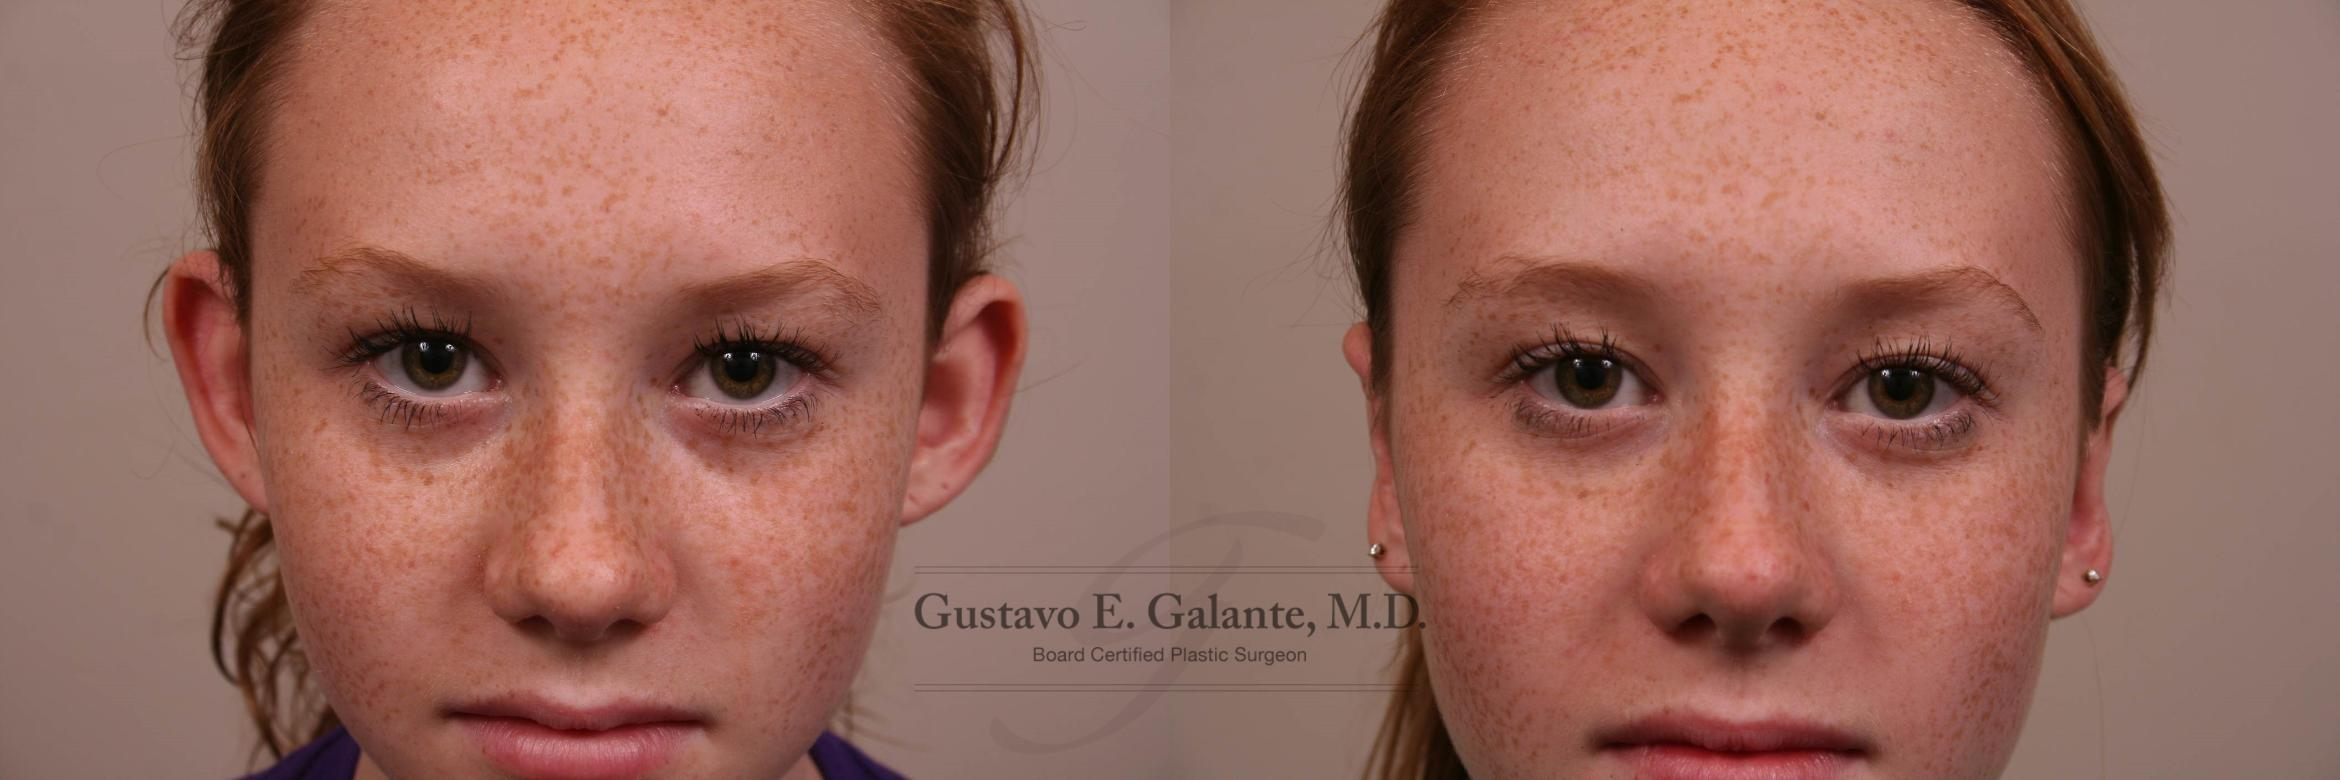 Ear Surgery (Otoplasty) Case 157 Before & After View #1 | Schererville, IN | Gustavo E. Galante, MD